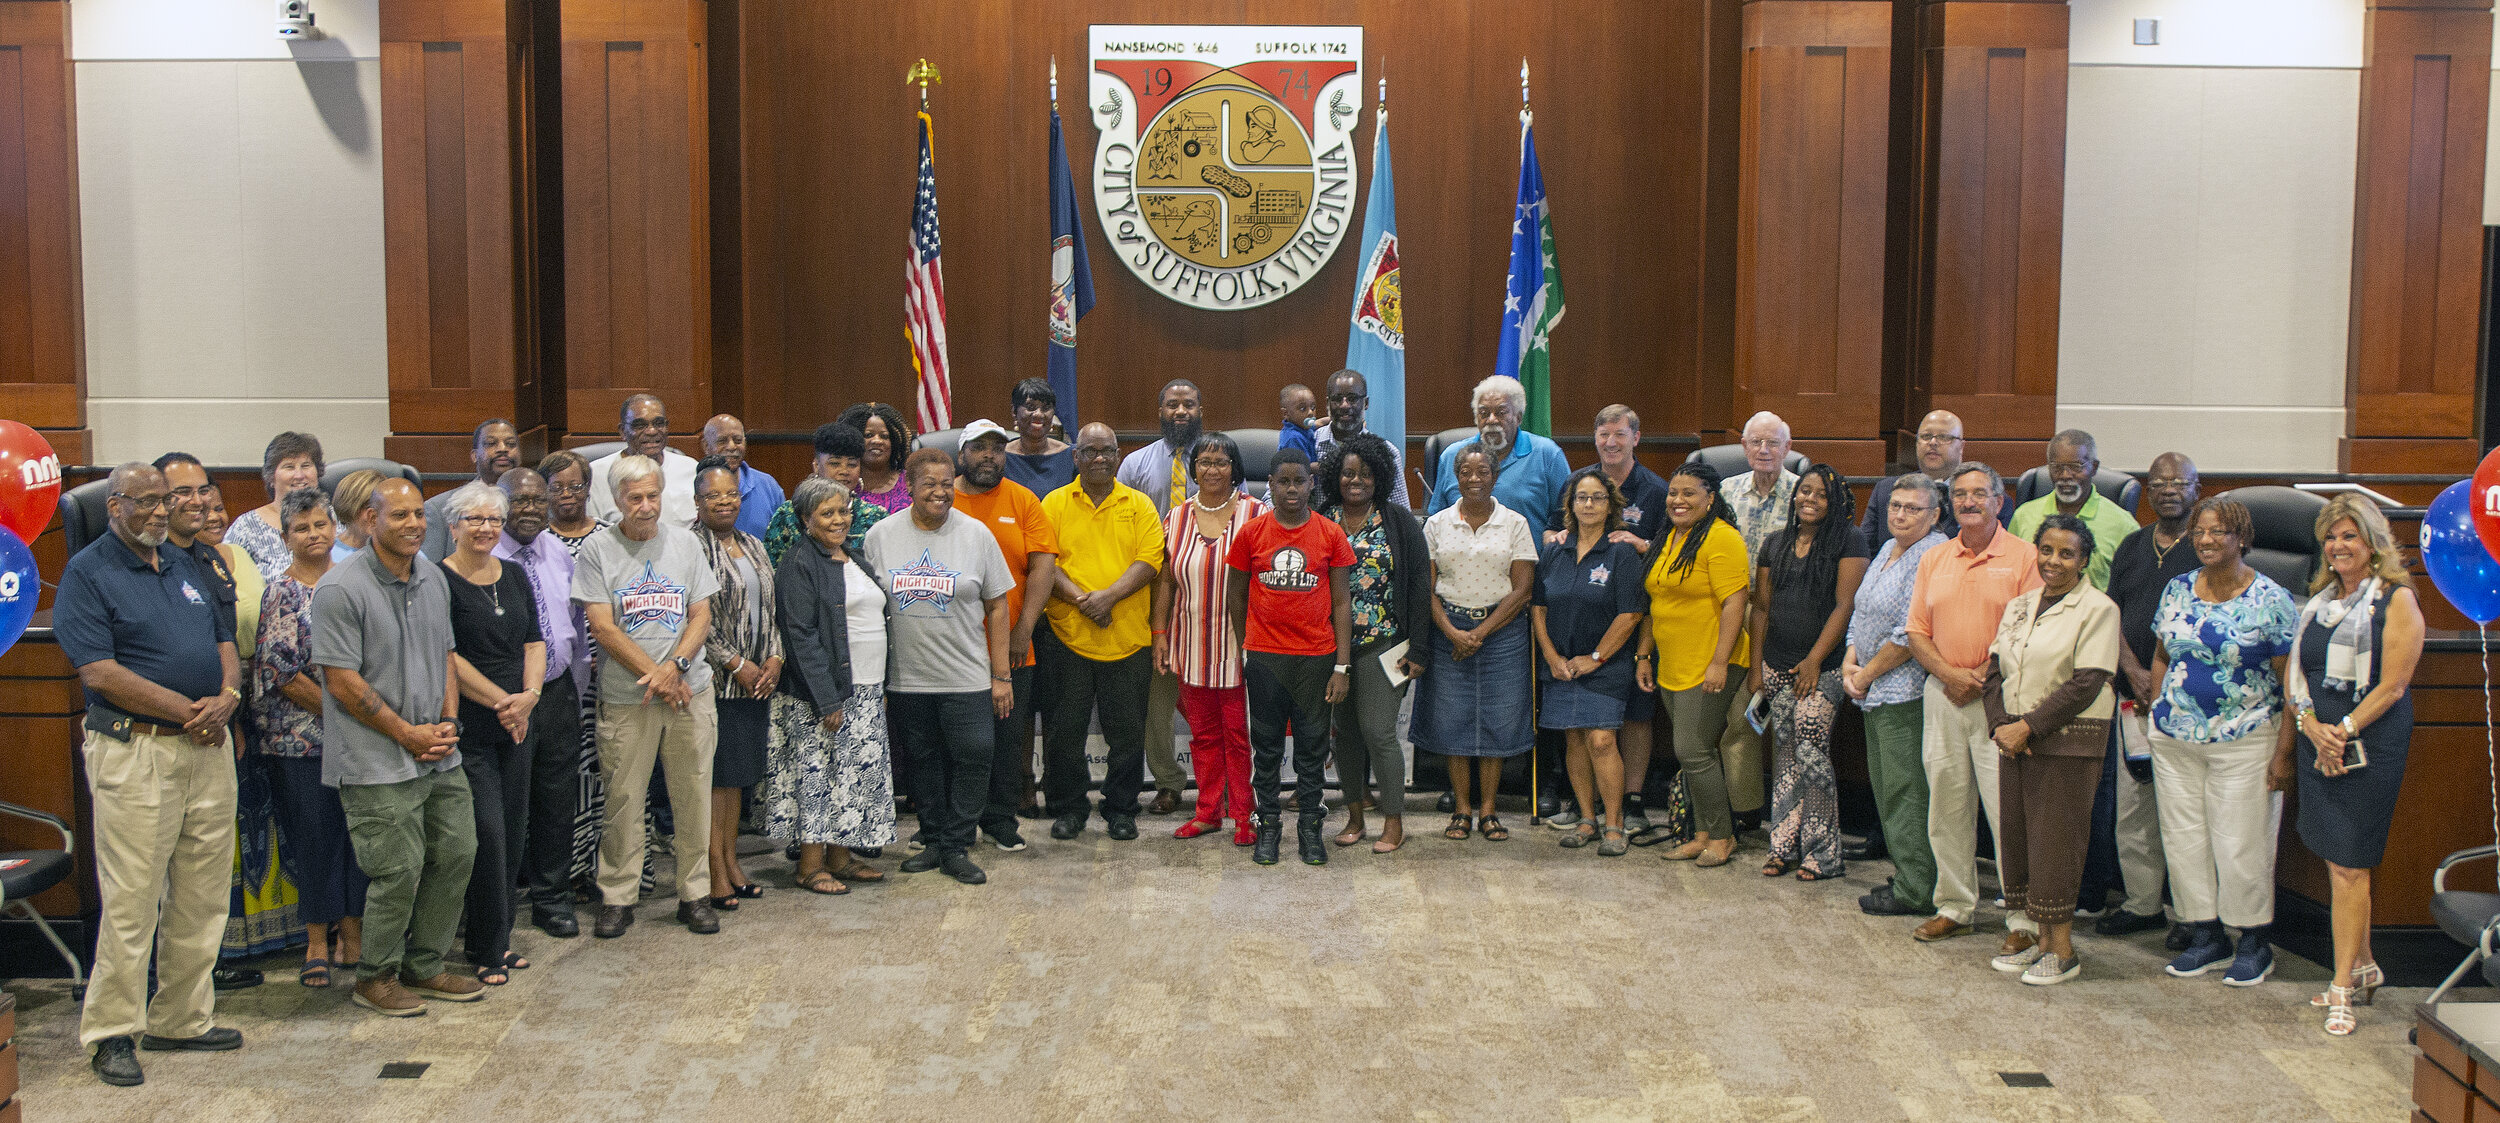 2019 NNO_Group.jpg